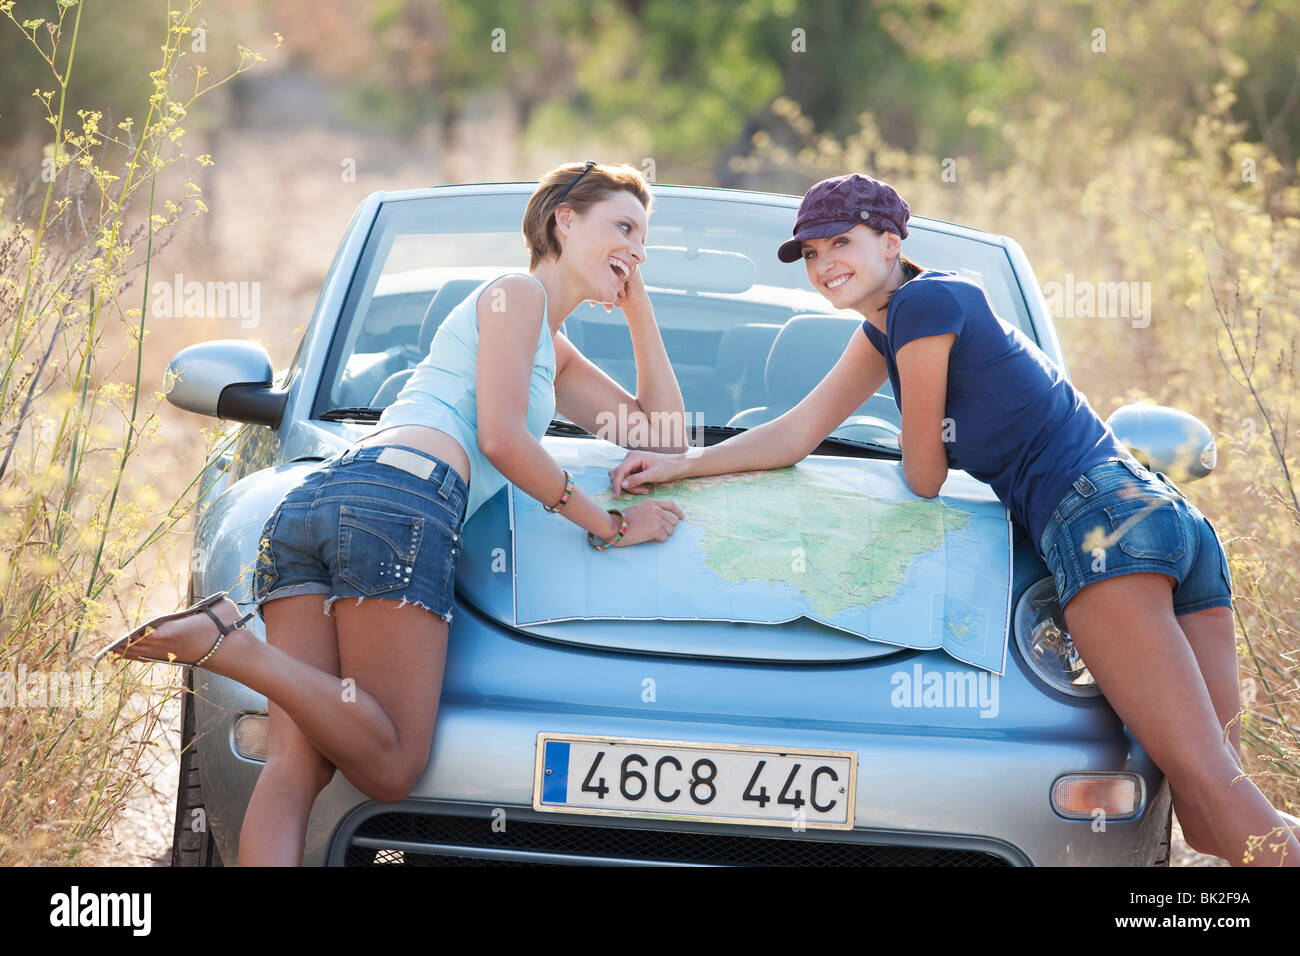 Two women reading a map on a car bonnet - Stock Image